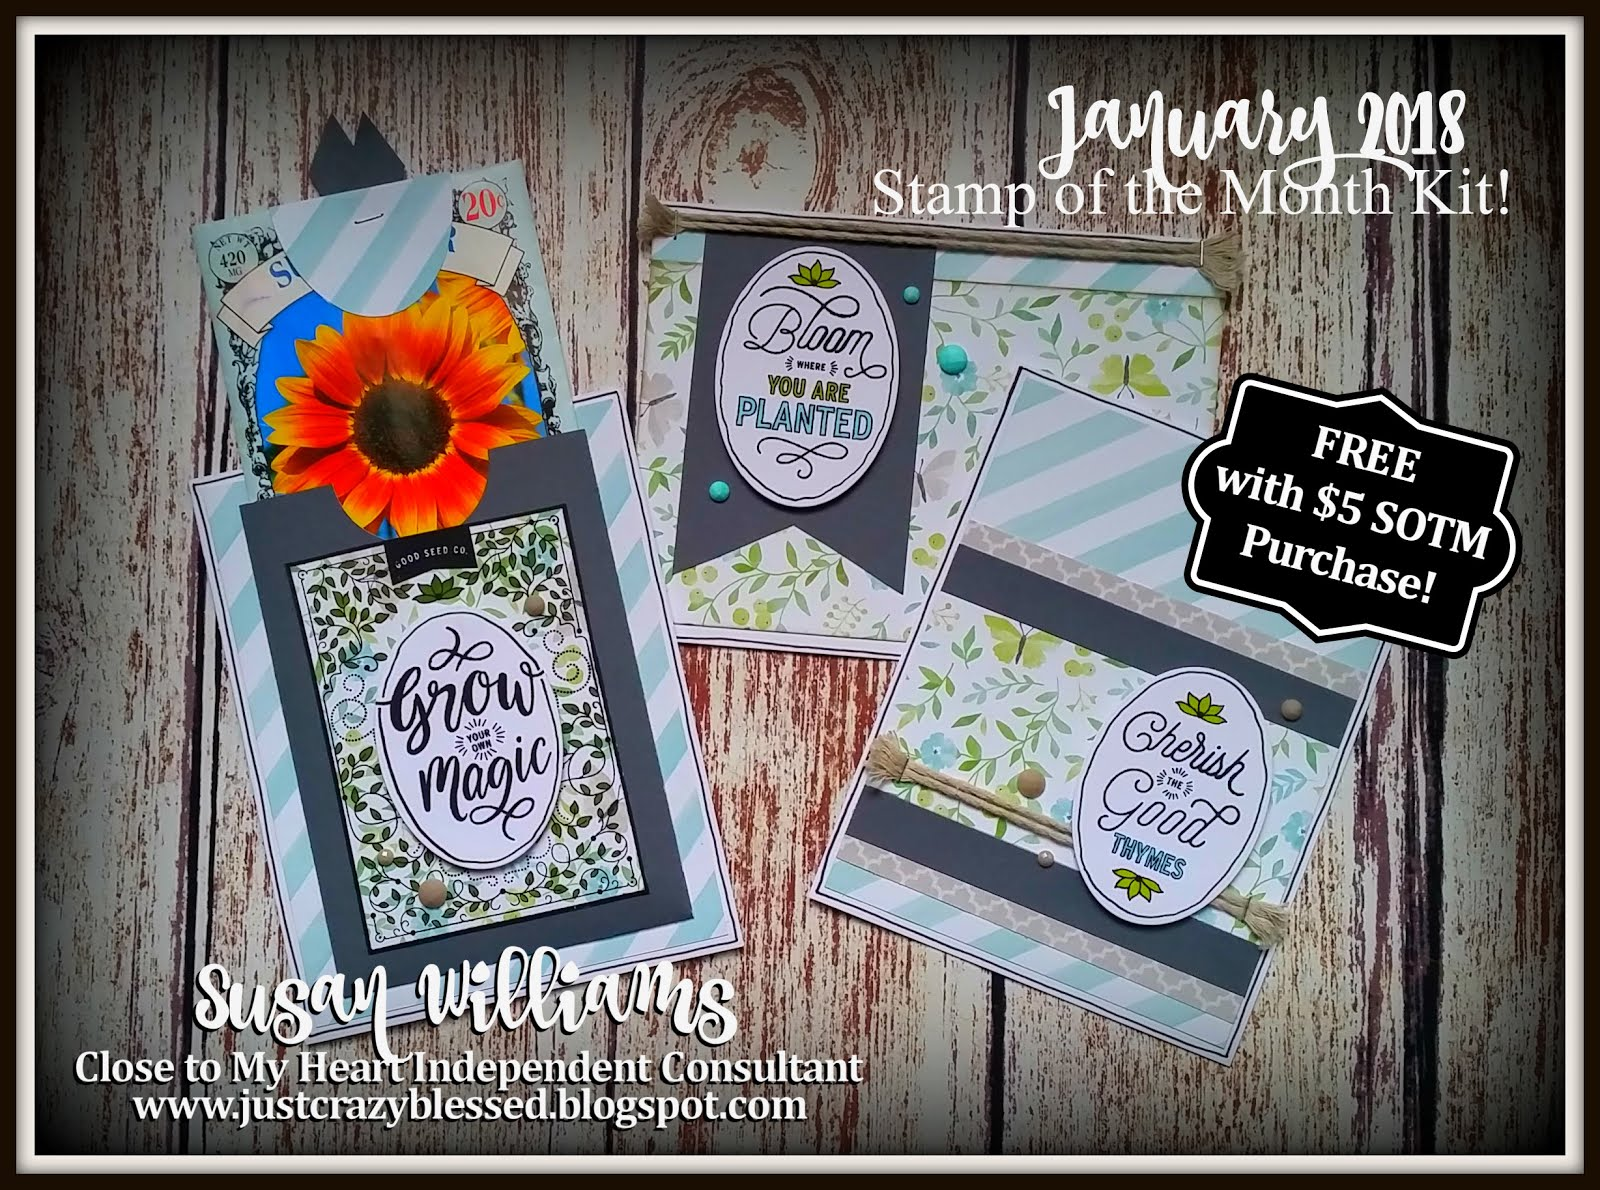 January Stamp of the Month Card Kit! With Interactive Pocket design space file!